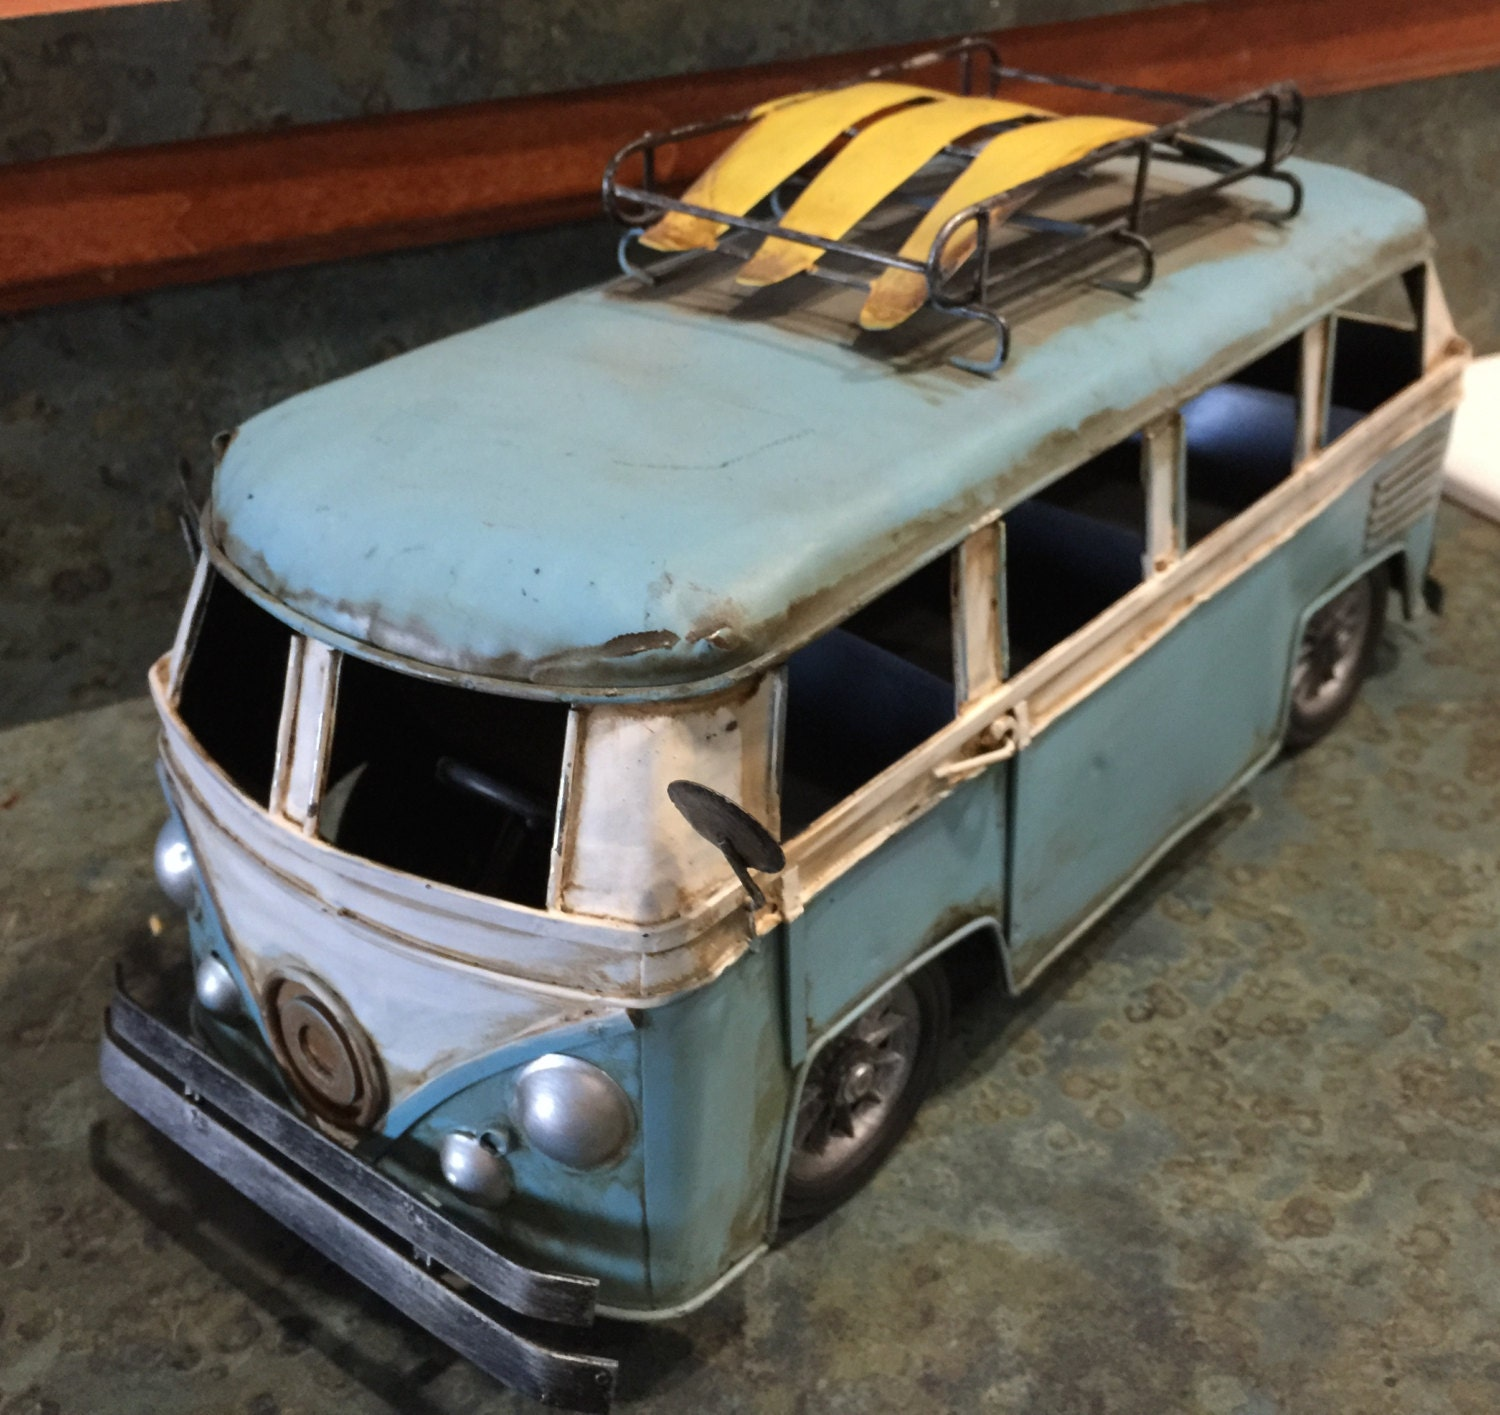 Where Can I Buy A Volkswagen Bus: Vintage Metal VW Micro Bus Toy With Surf Boards On Top